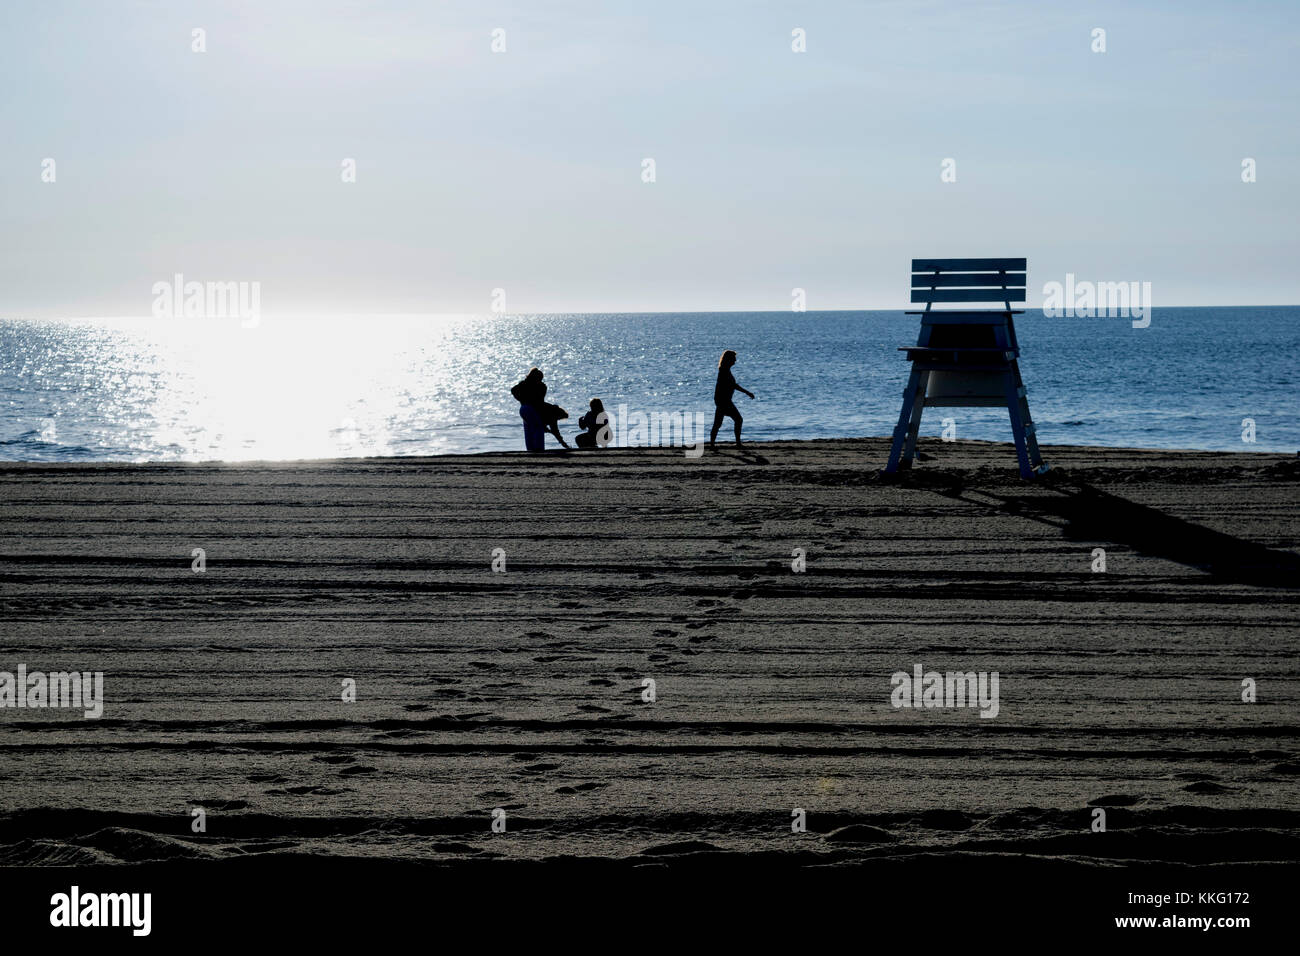 Shell seekers at the beach - Stock Image